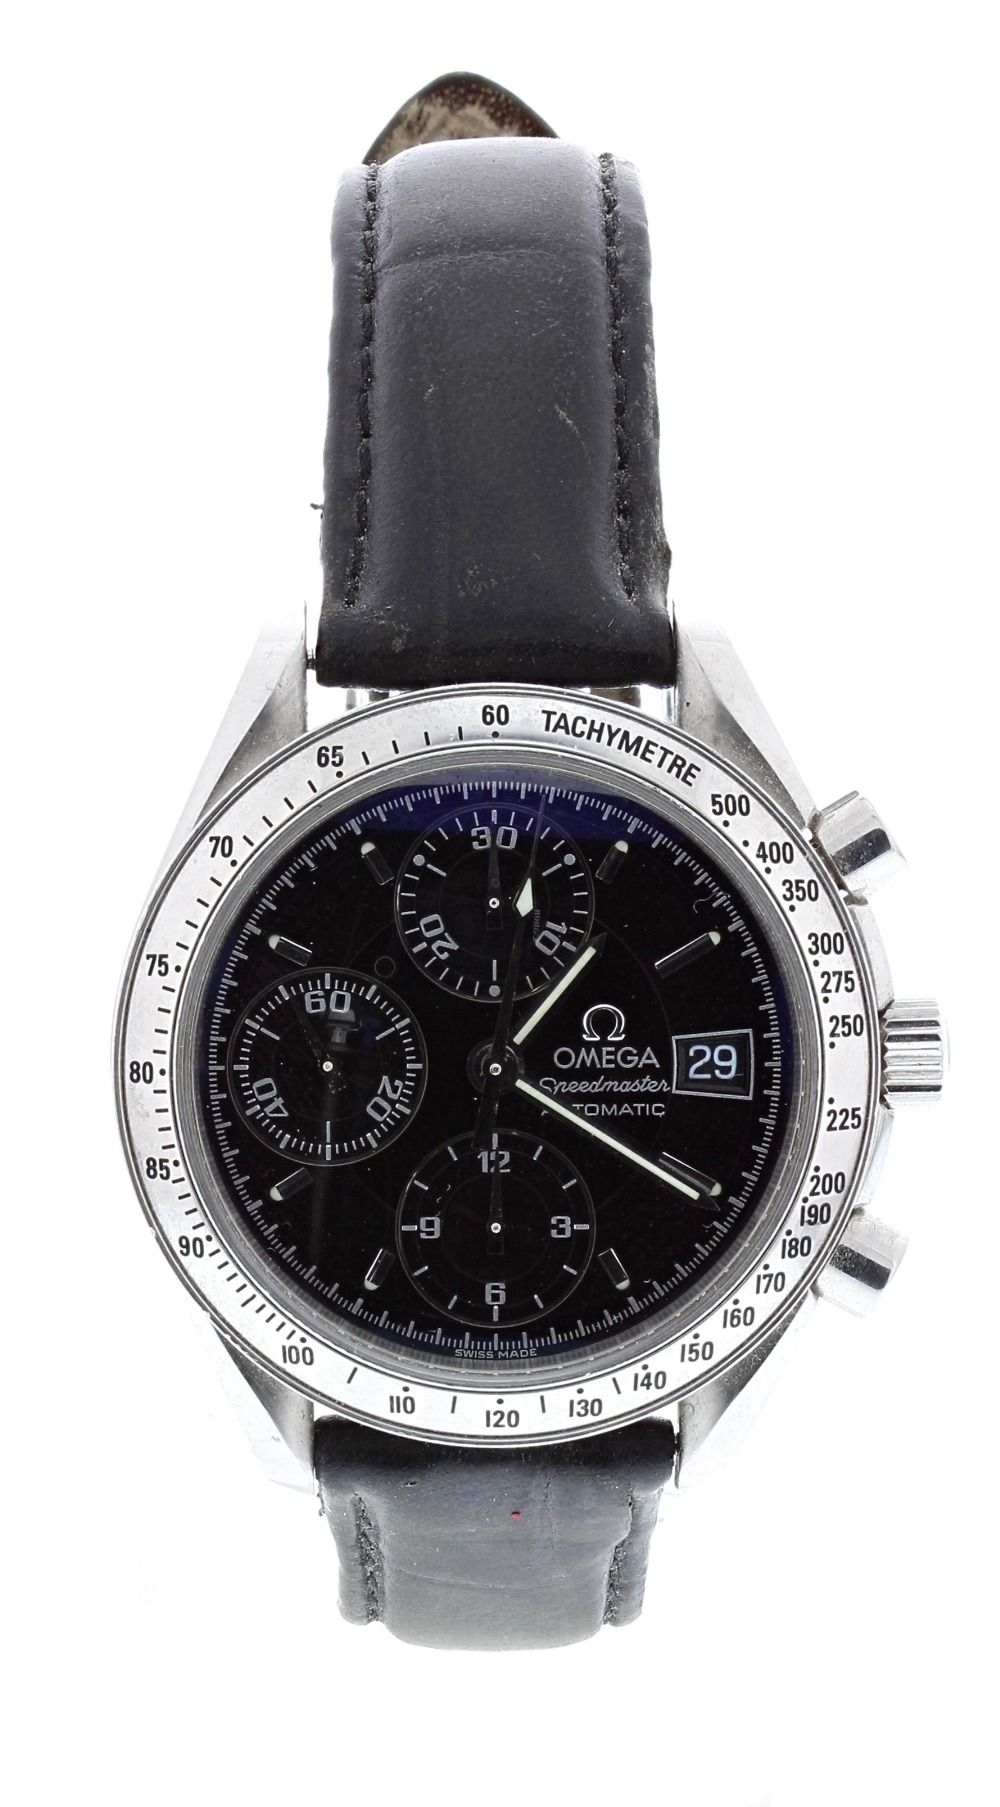 Lot 20 - Omega Speedmaster chronograph automatic stainless steel gentleman's wristwatch, ref. 3813.50CL,